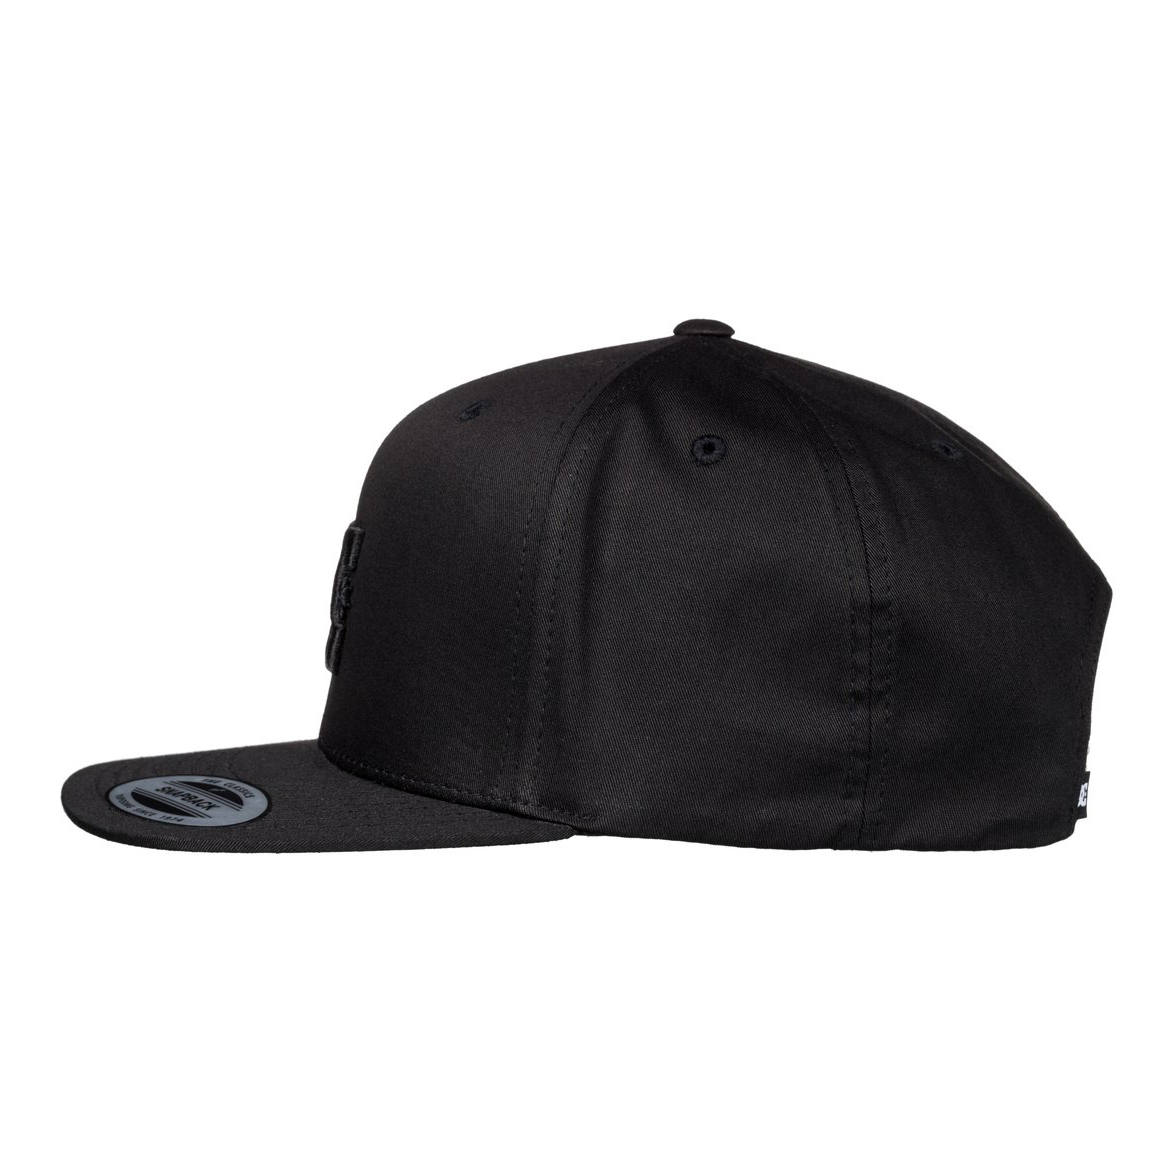 1438e25dfd292 DC Snappy Snapback Hat PRODUCT INFO Men s Snappy Snapback Hat The nuts and  bolts. Margin builder 6-panel cotton snapback design